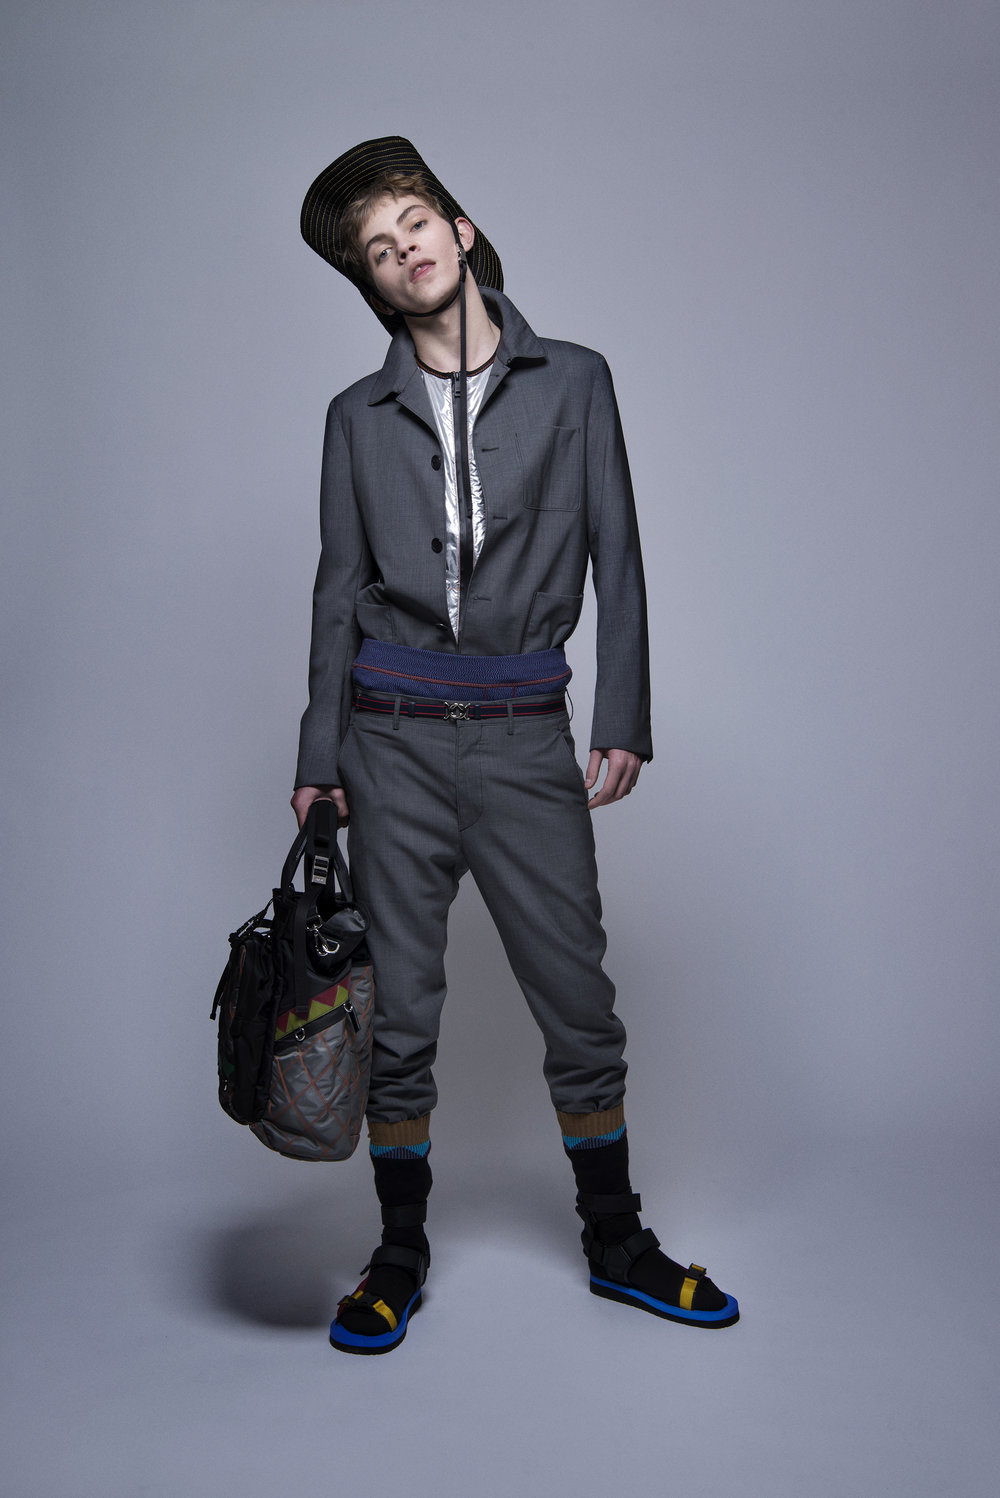 C&S_Man_Prada_Shot_02_5823.jpg